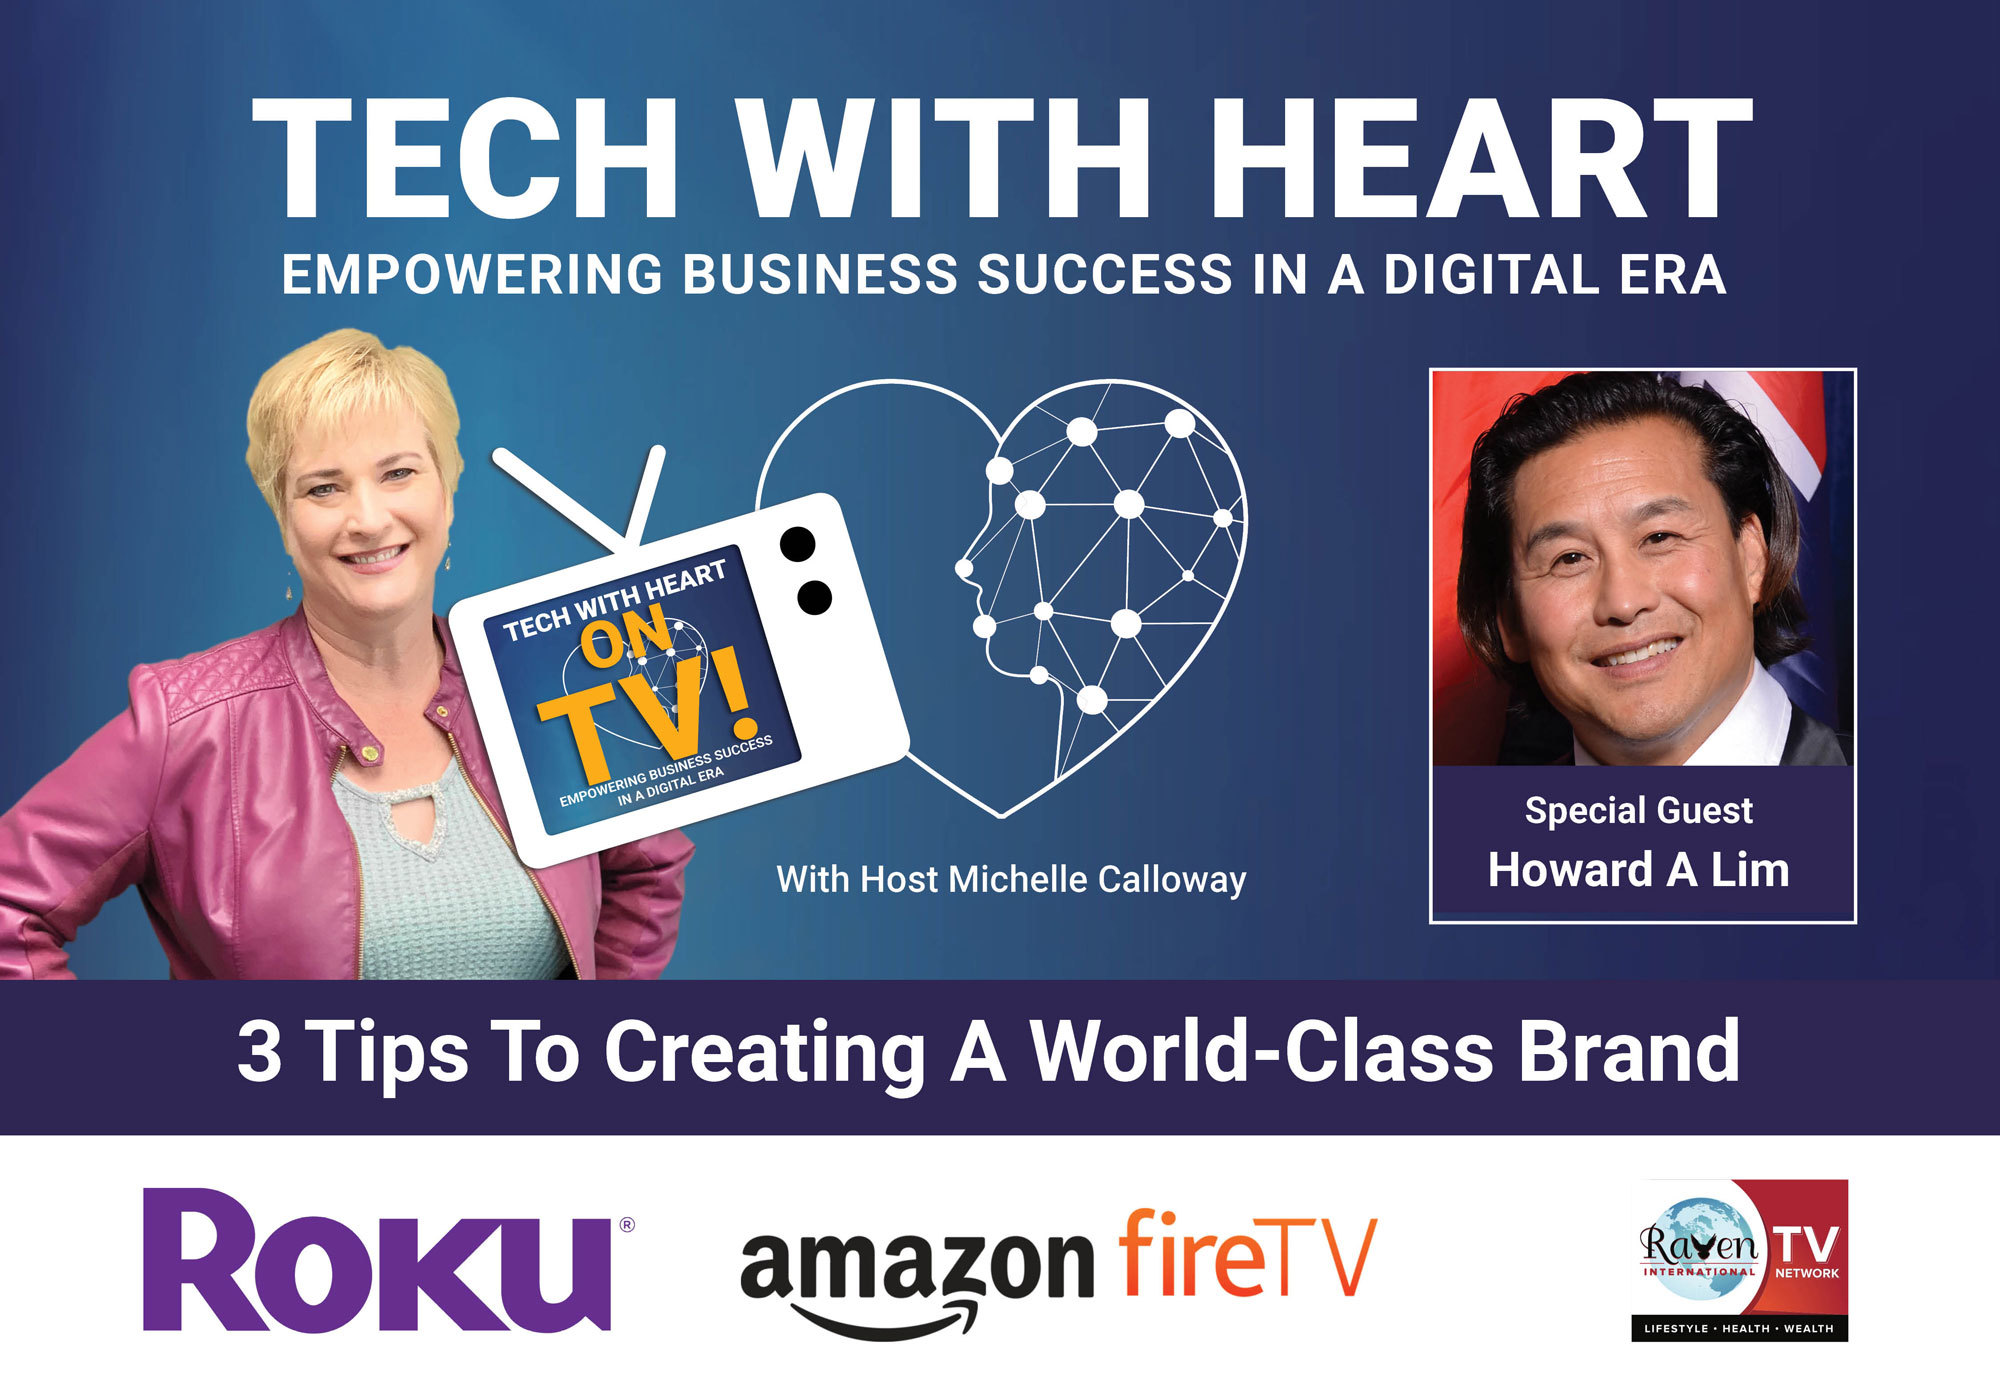 howard lim on tech with heart